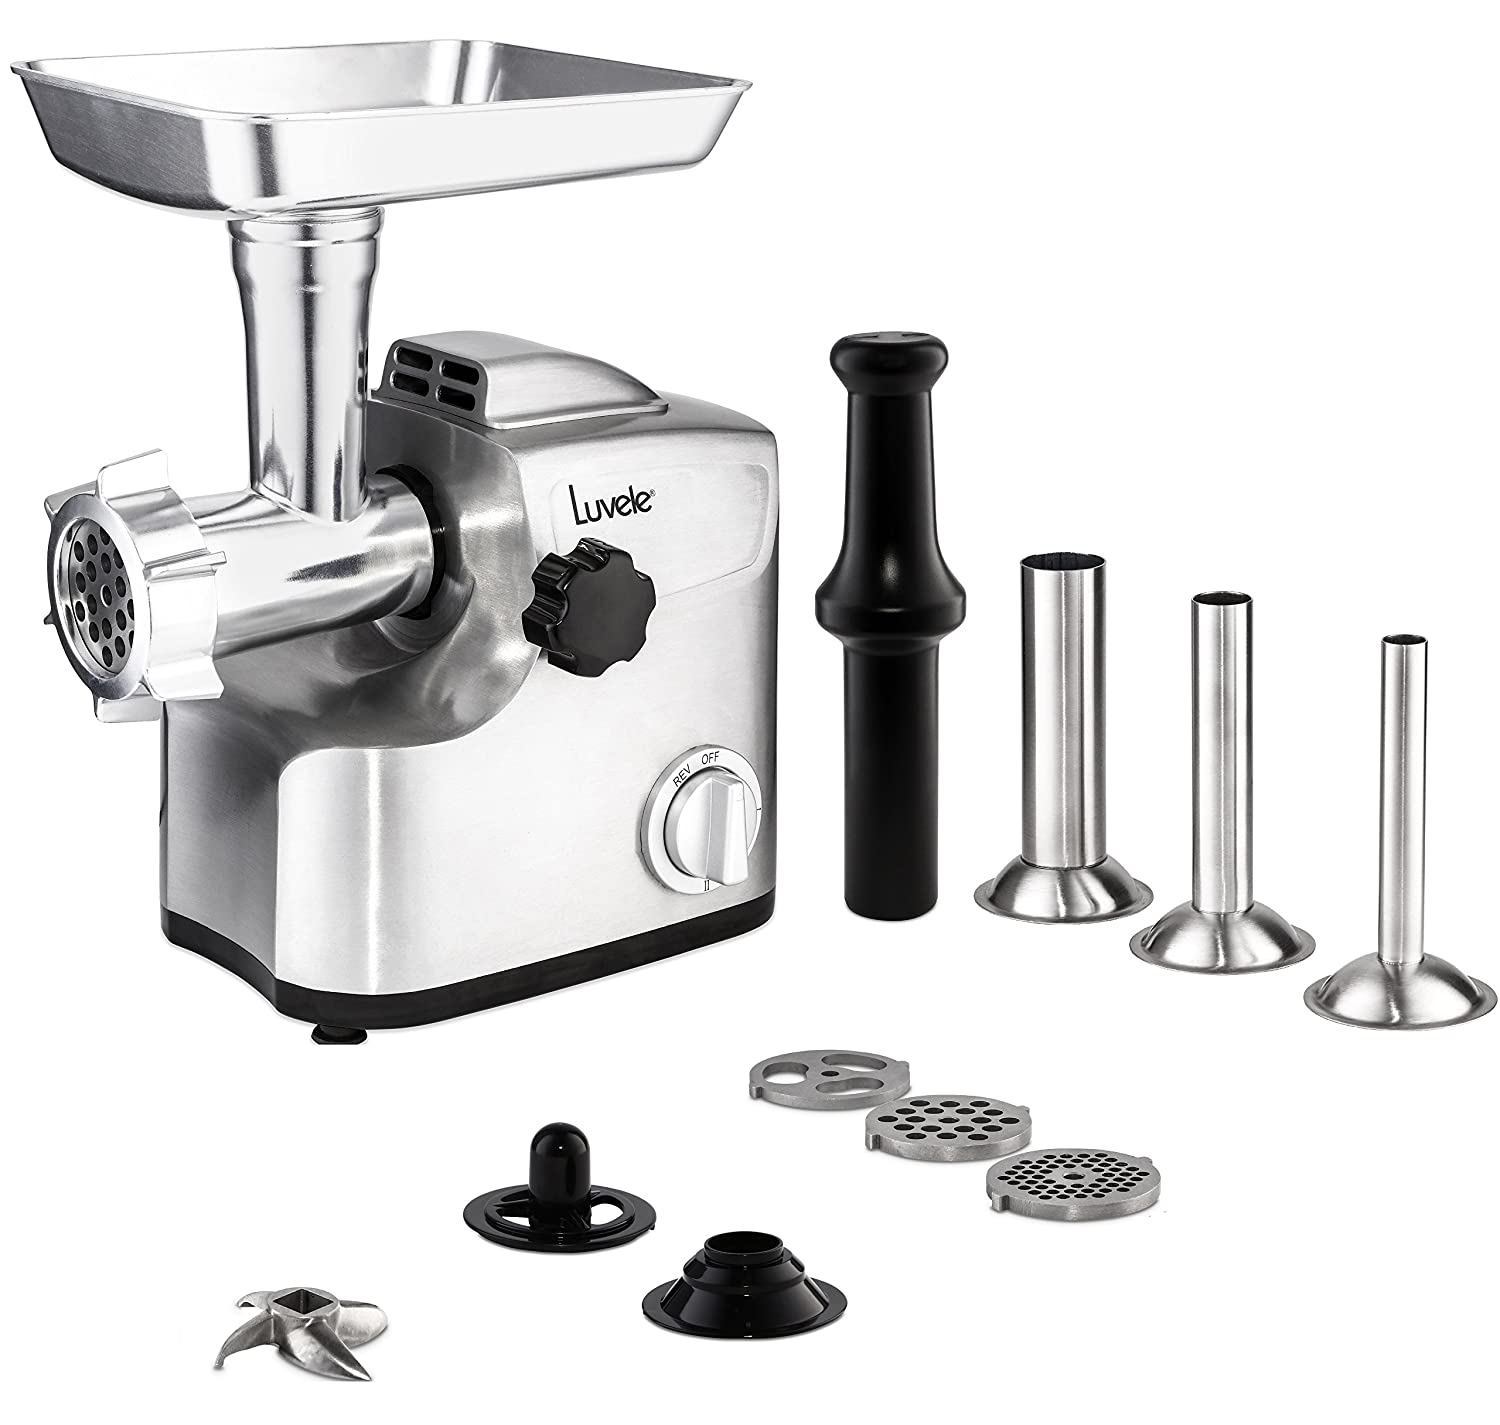 Nozzle kebbe - what is it in a meat grinder 33